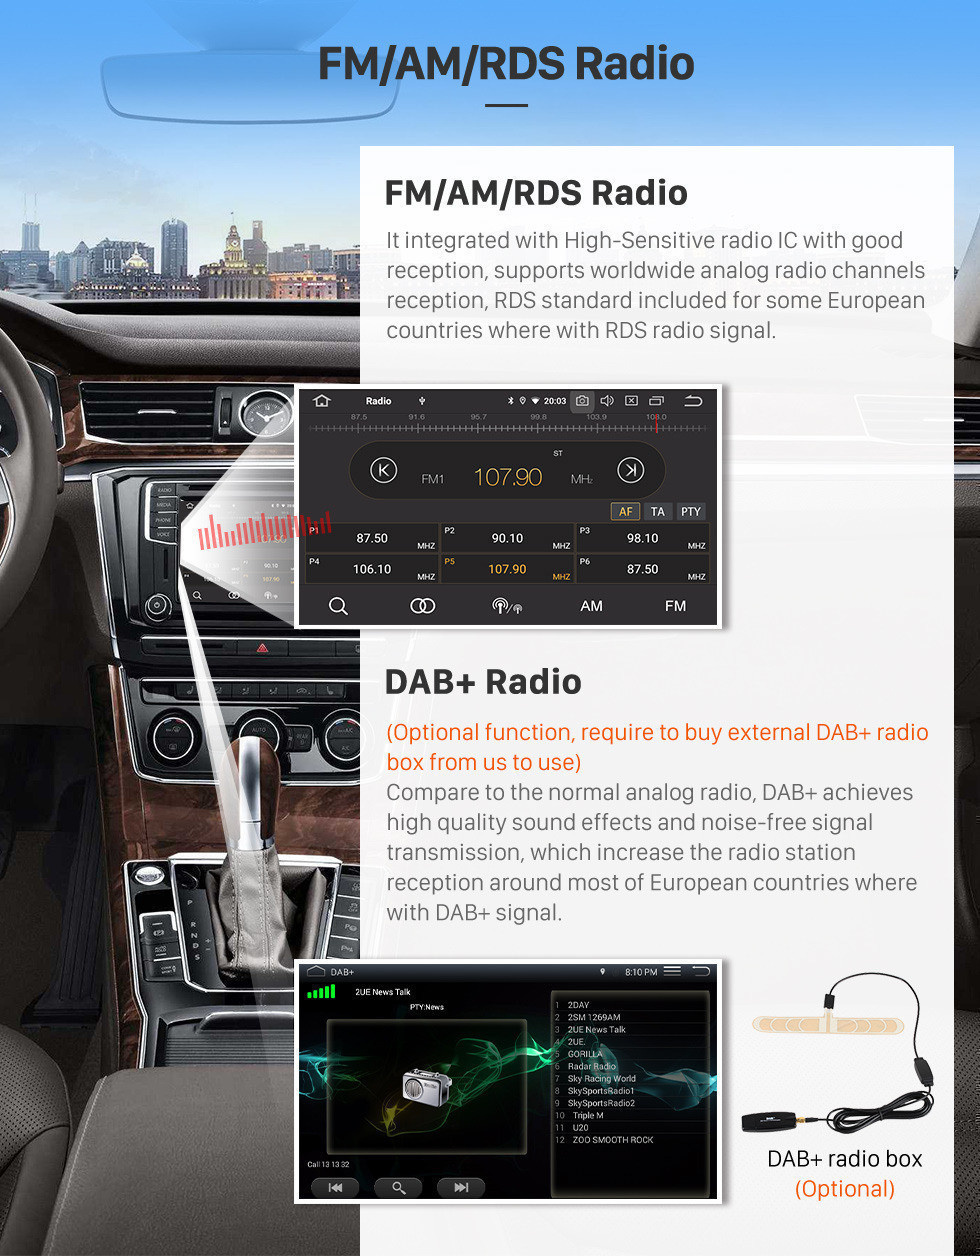 Seicane 9 inch Android 10.0 HD 1024*600 Touch Screen 2004-2012 Mercedes Benz A W169 A150 A160 A170 A180 A200 Radio GPS Head Unit with 3G WiFi DVD Player Bluetooth Music AUX Rearview Camera OBD2 Mirror Link